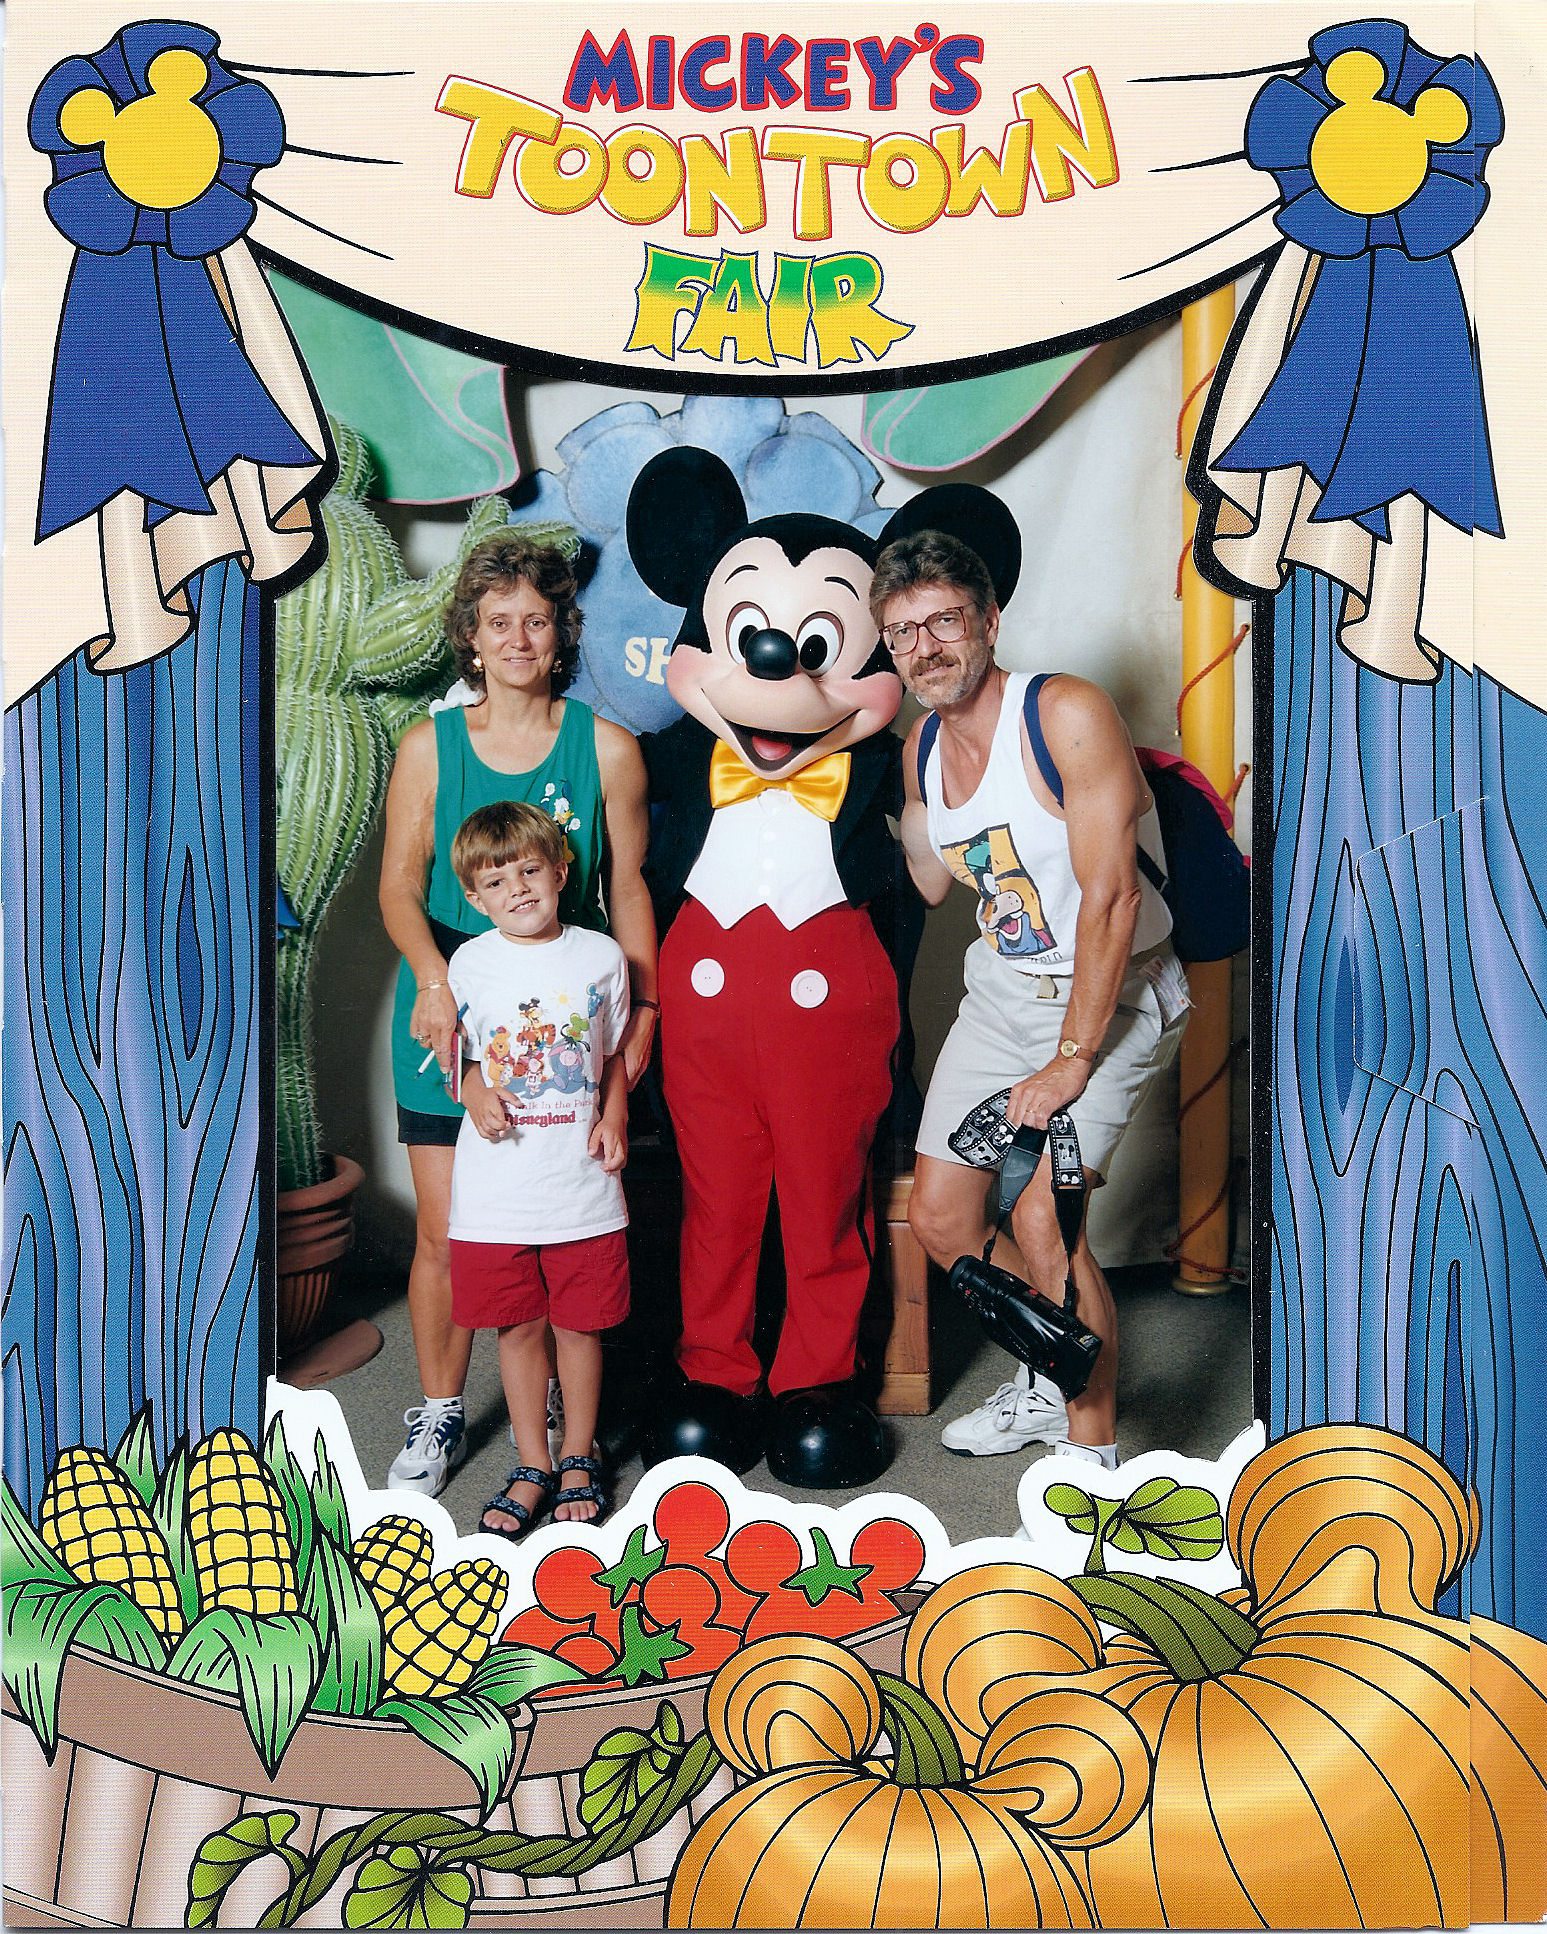 My parents, Mickey Mouse, and I at Mickey's Fair at The Magic Kingdom, Walt Disney World.